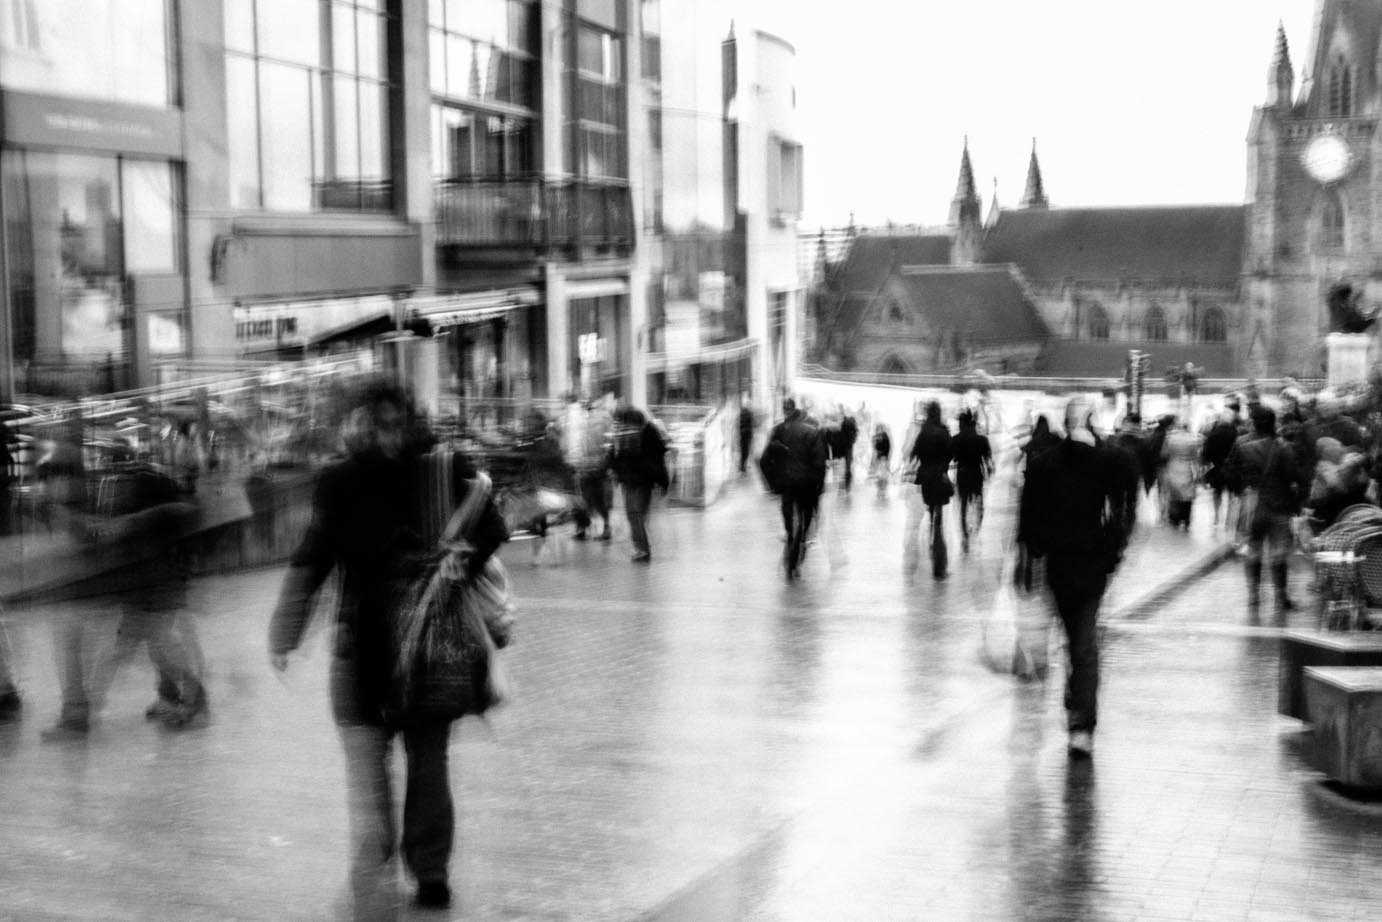 The reflections from the rain and the movement of the shoppers add to the atmosphere in this scene. Image copyright Katya Hall.